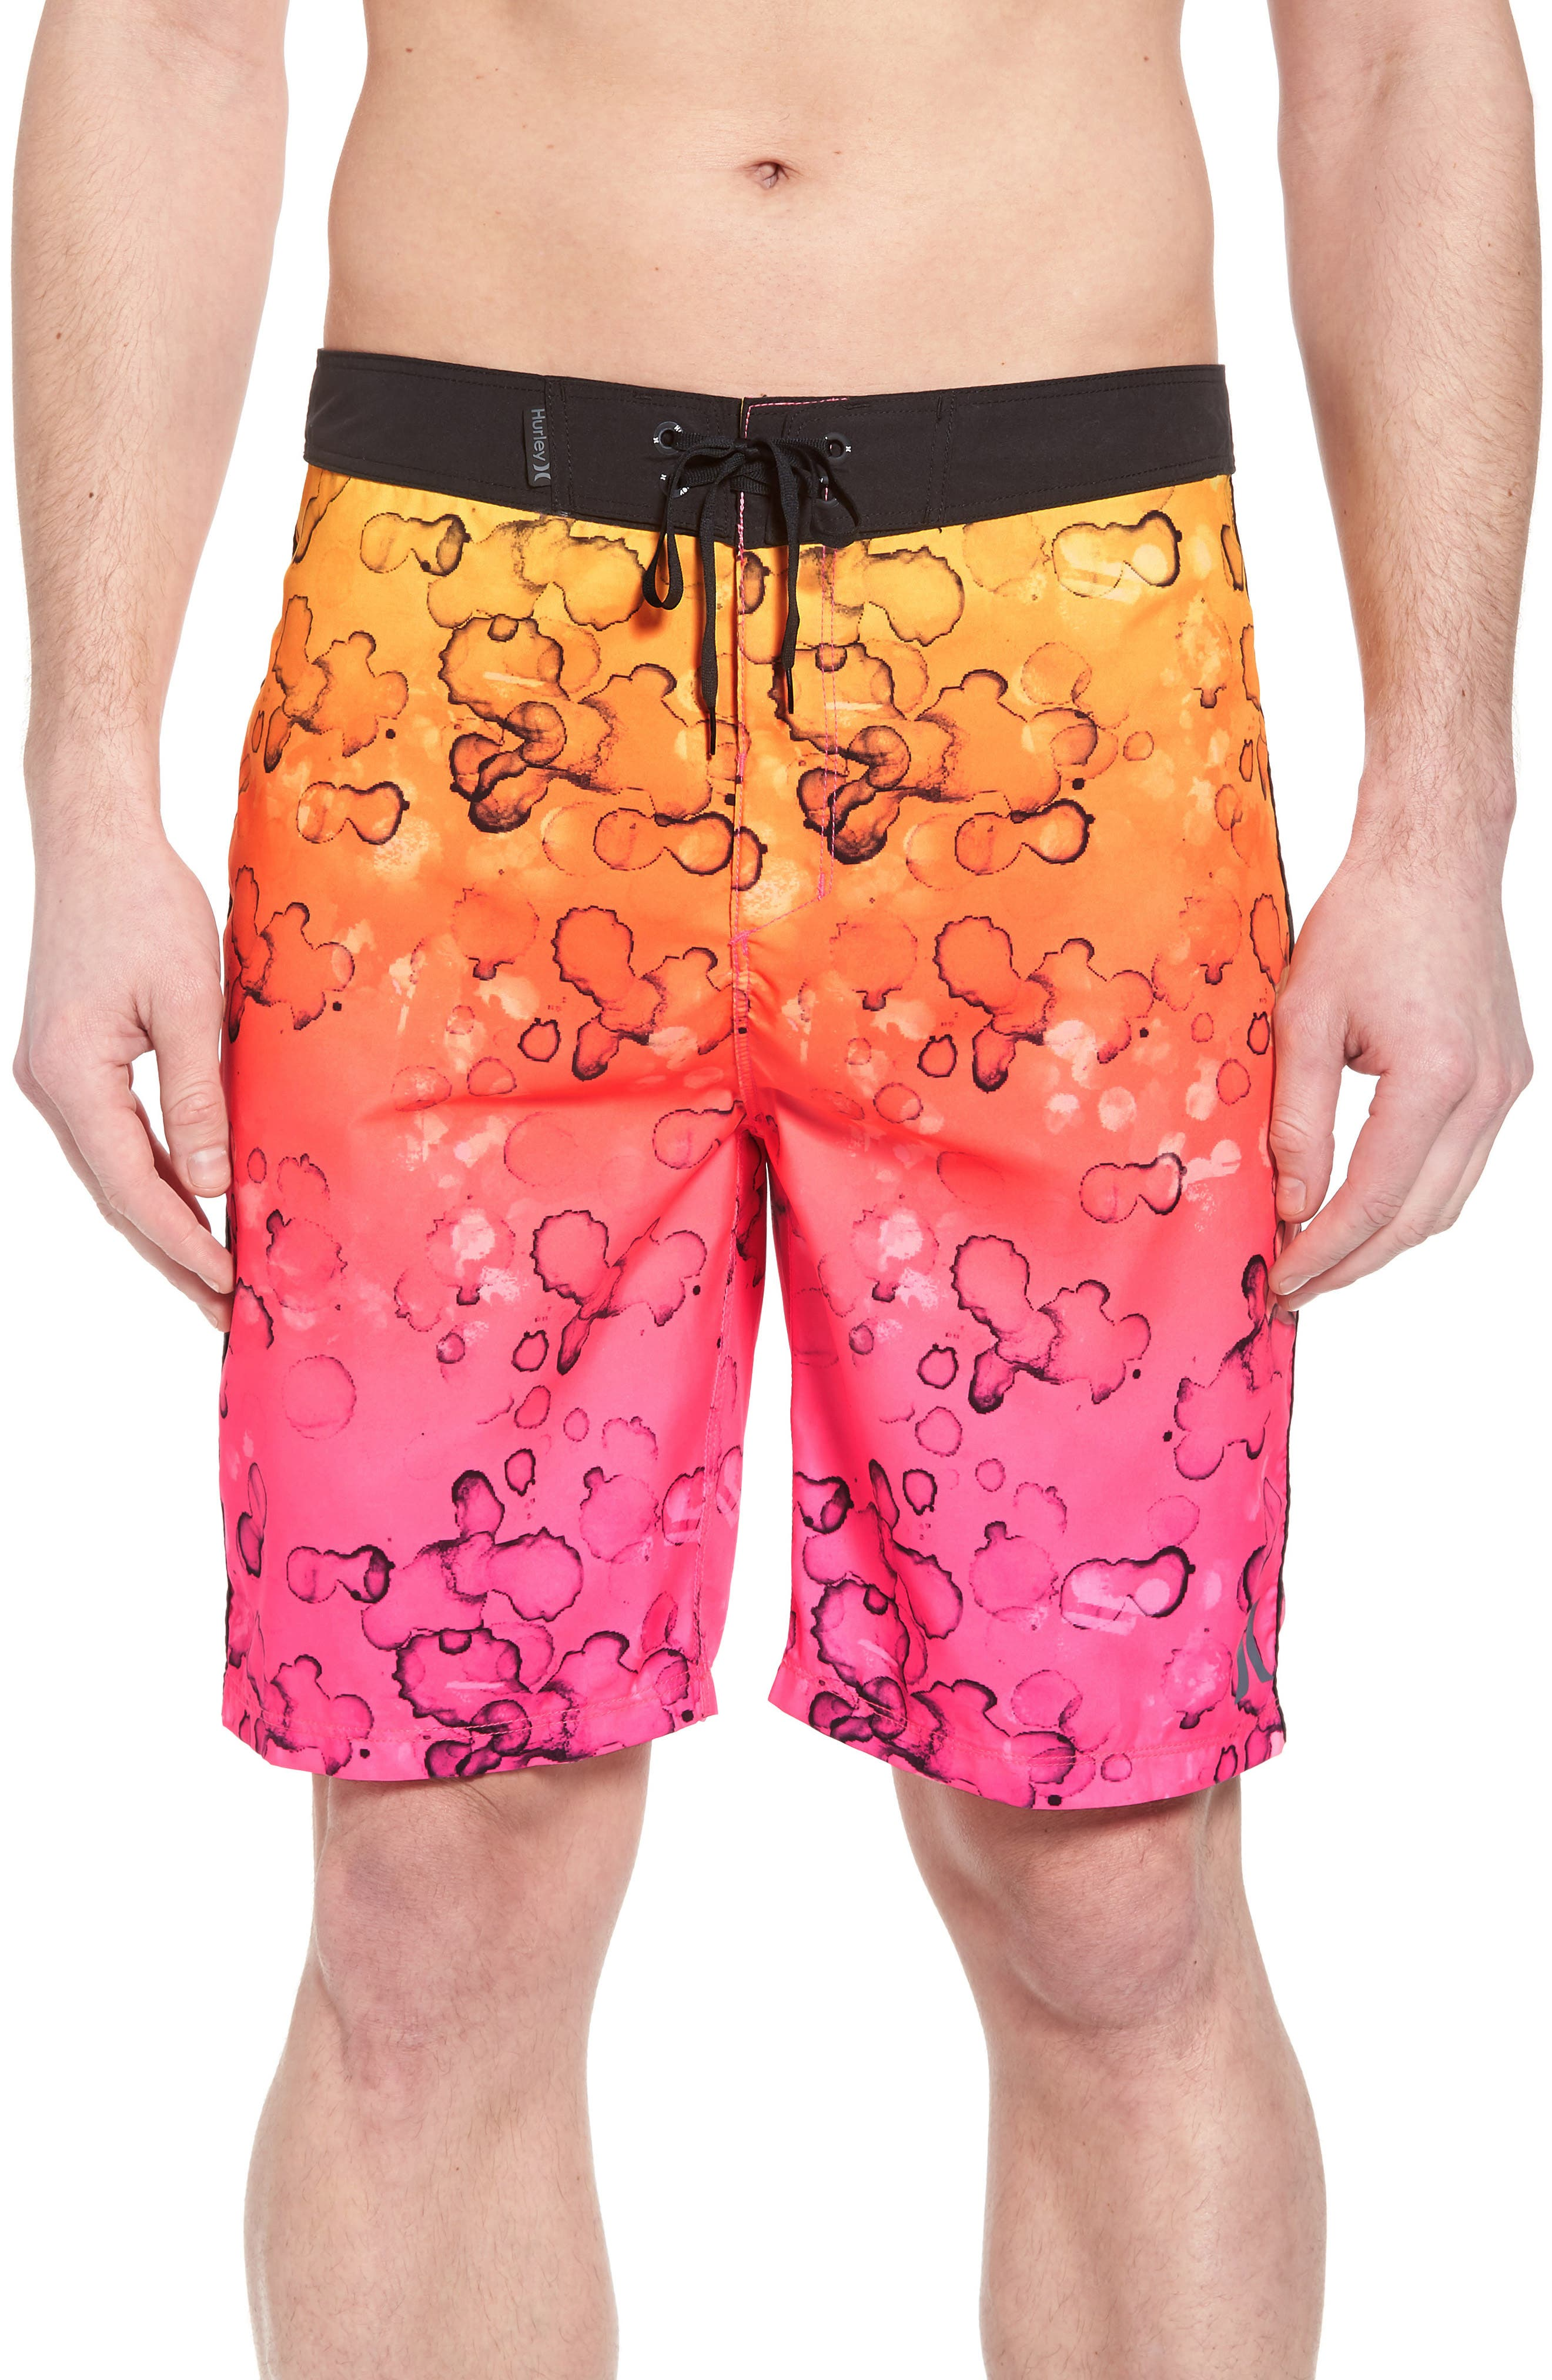 Splatter Grain Board Shorts,                             Main thumbnail 1, color,                             682